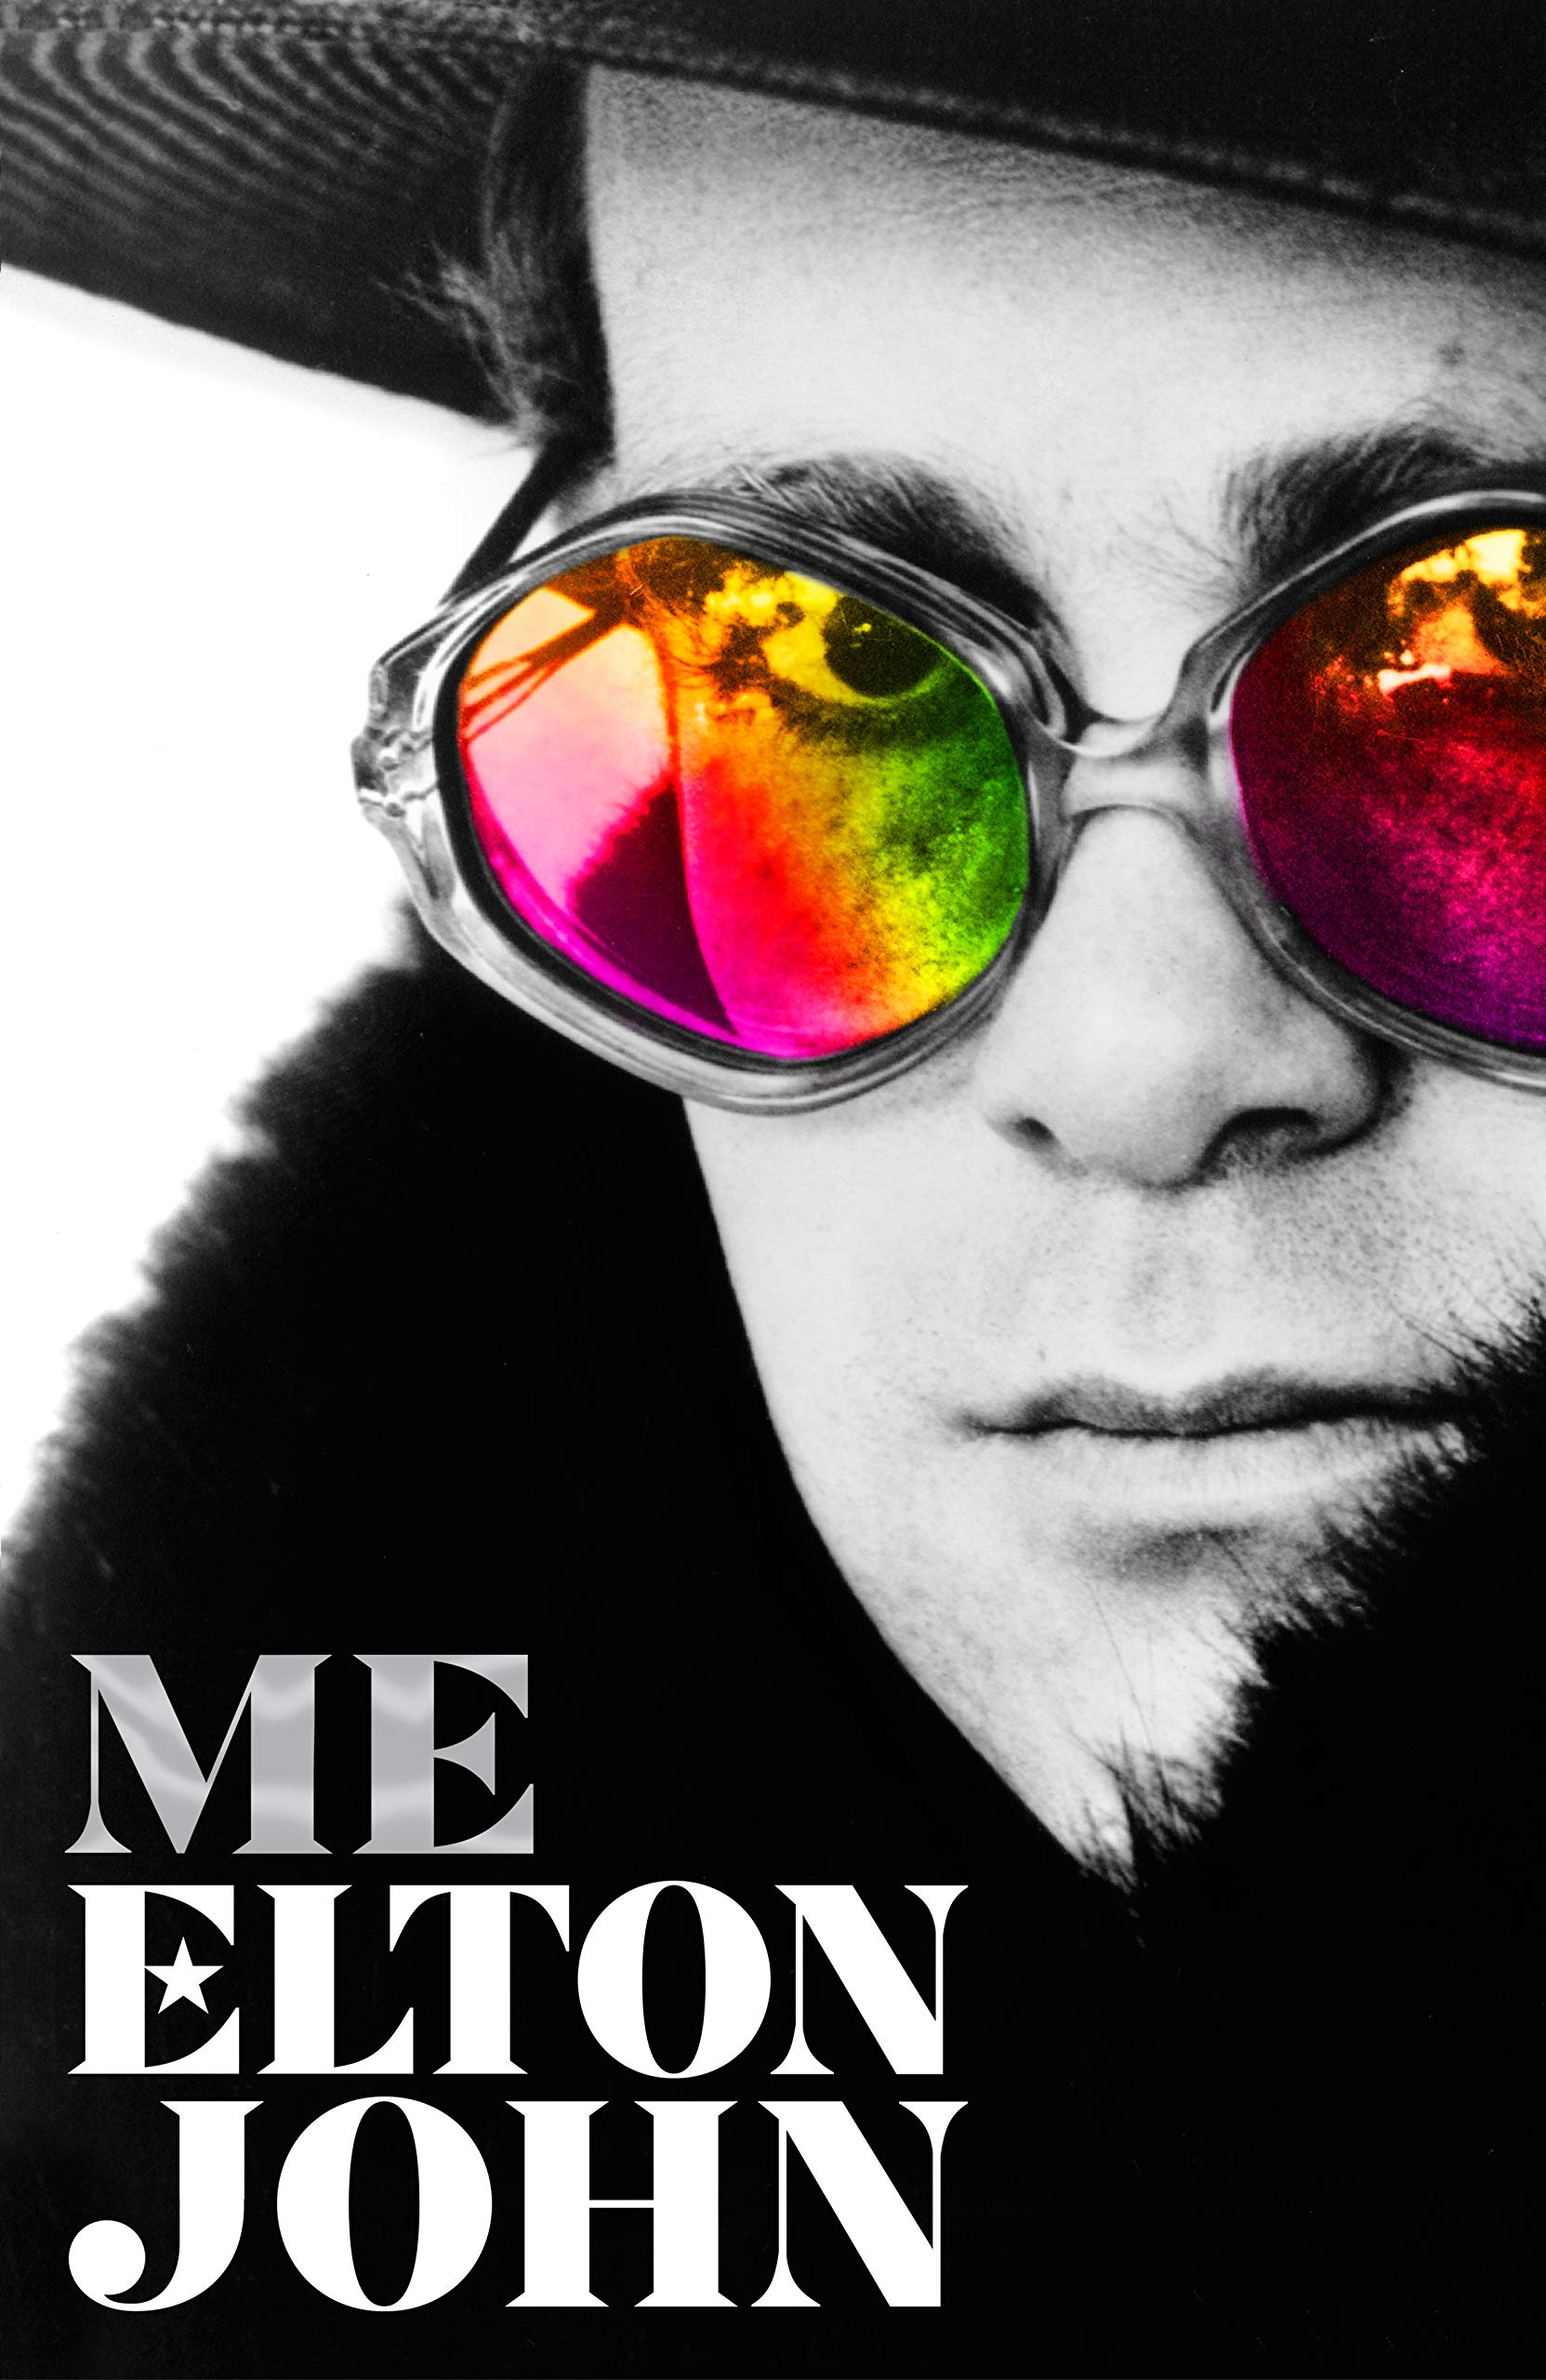 Image result for elton john ME